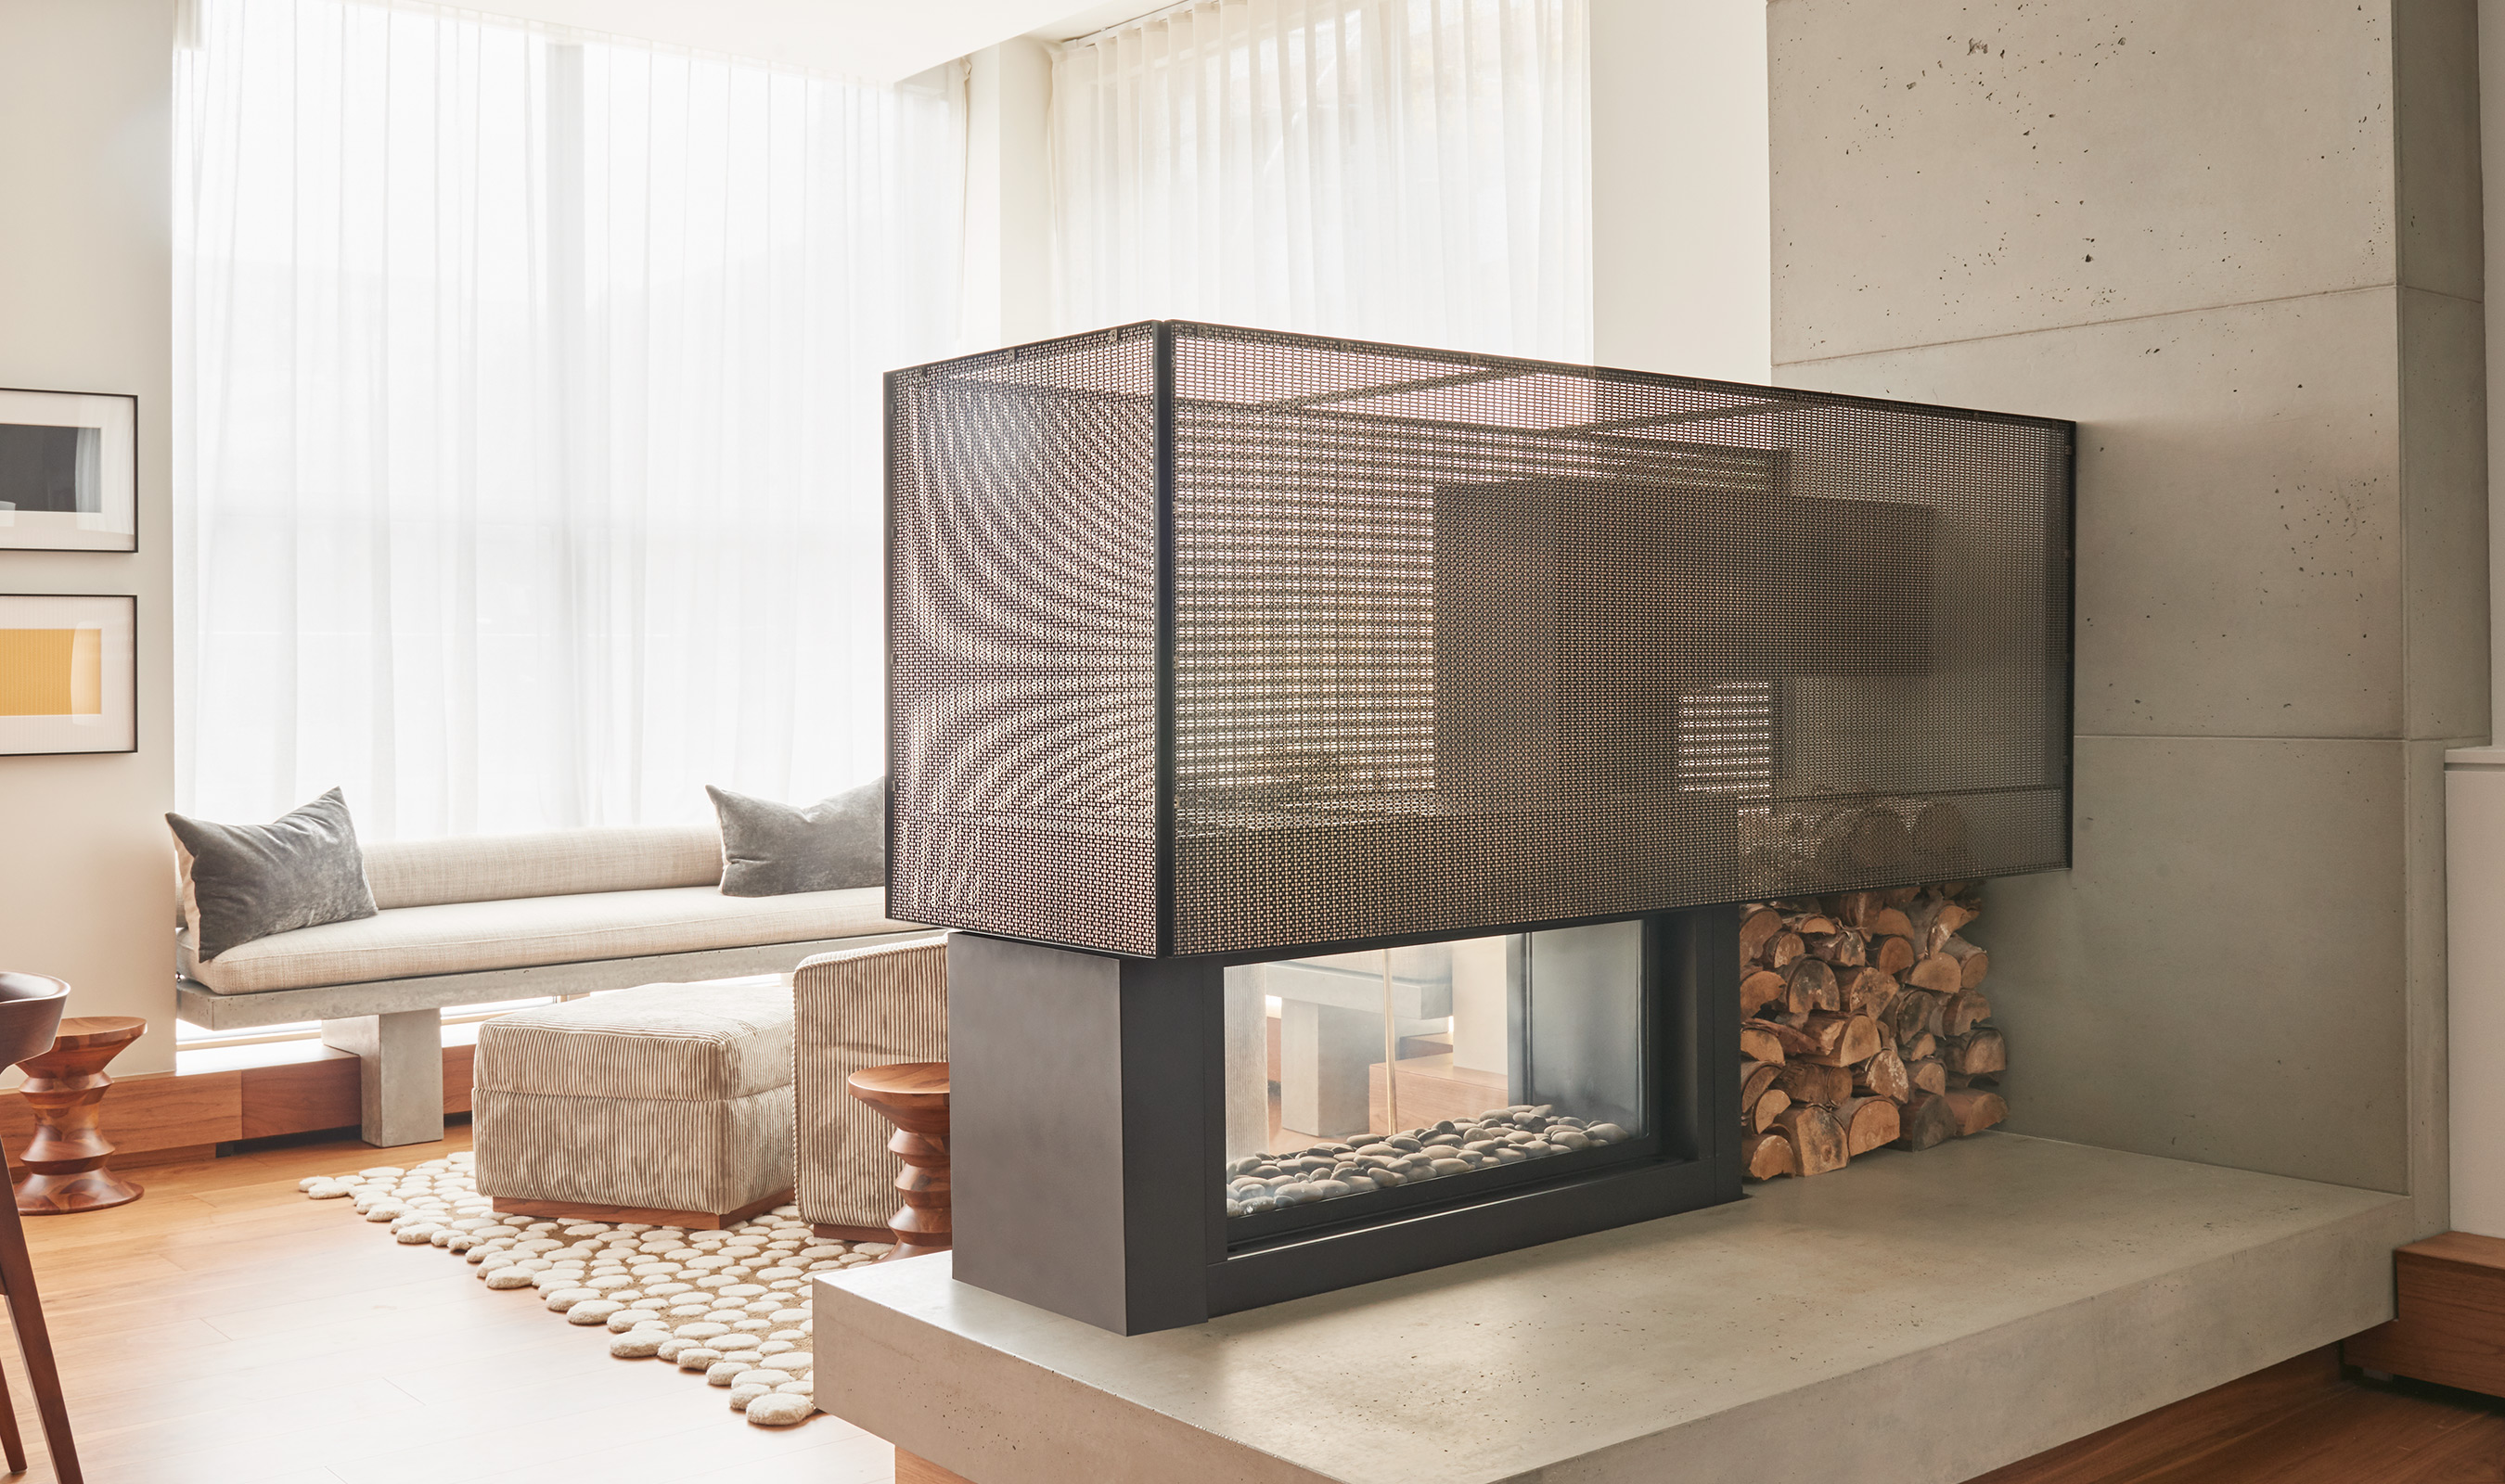 The semi-transparent nature of Banker Wire's SZ-3 woven wire mesh allows natural light to pass through the fireplace and highlights the modern aesthetic of the home.